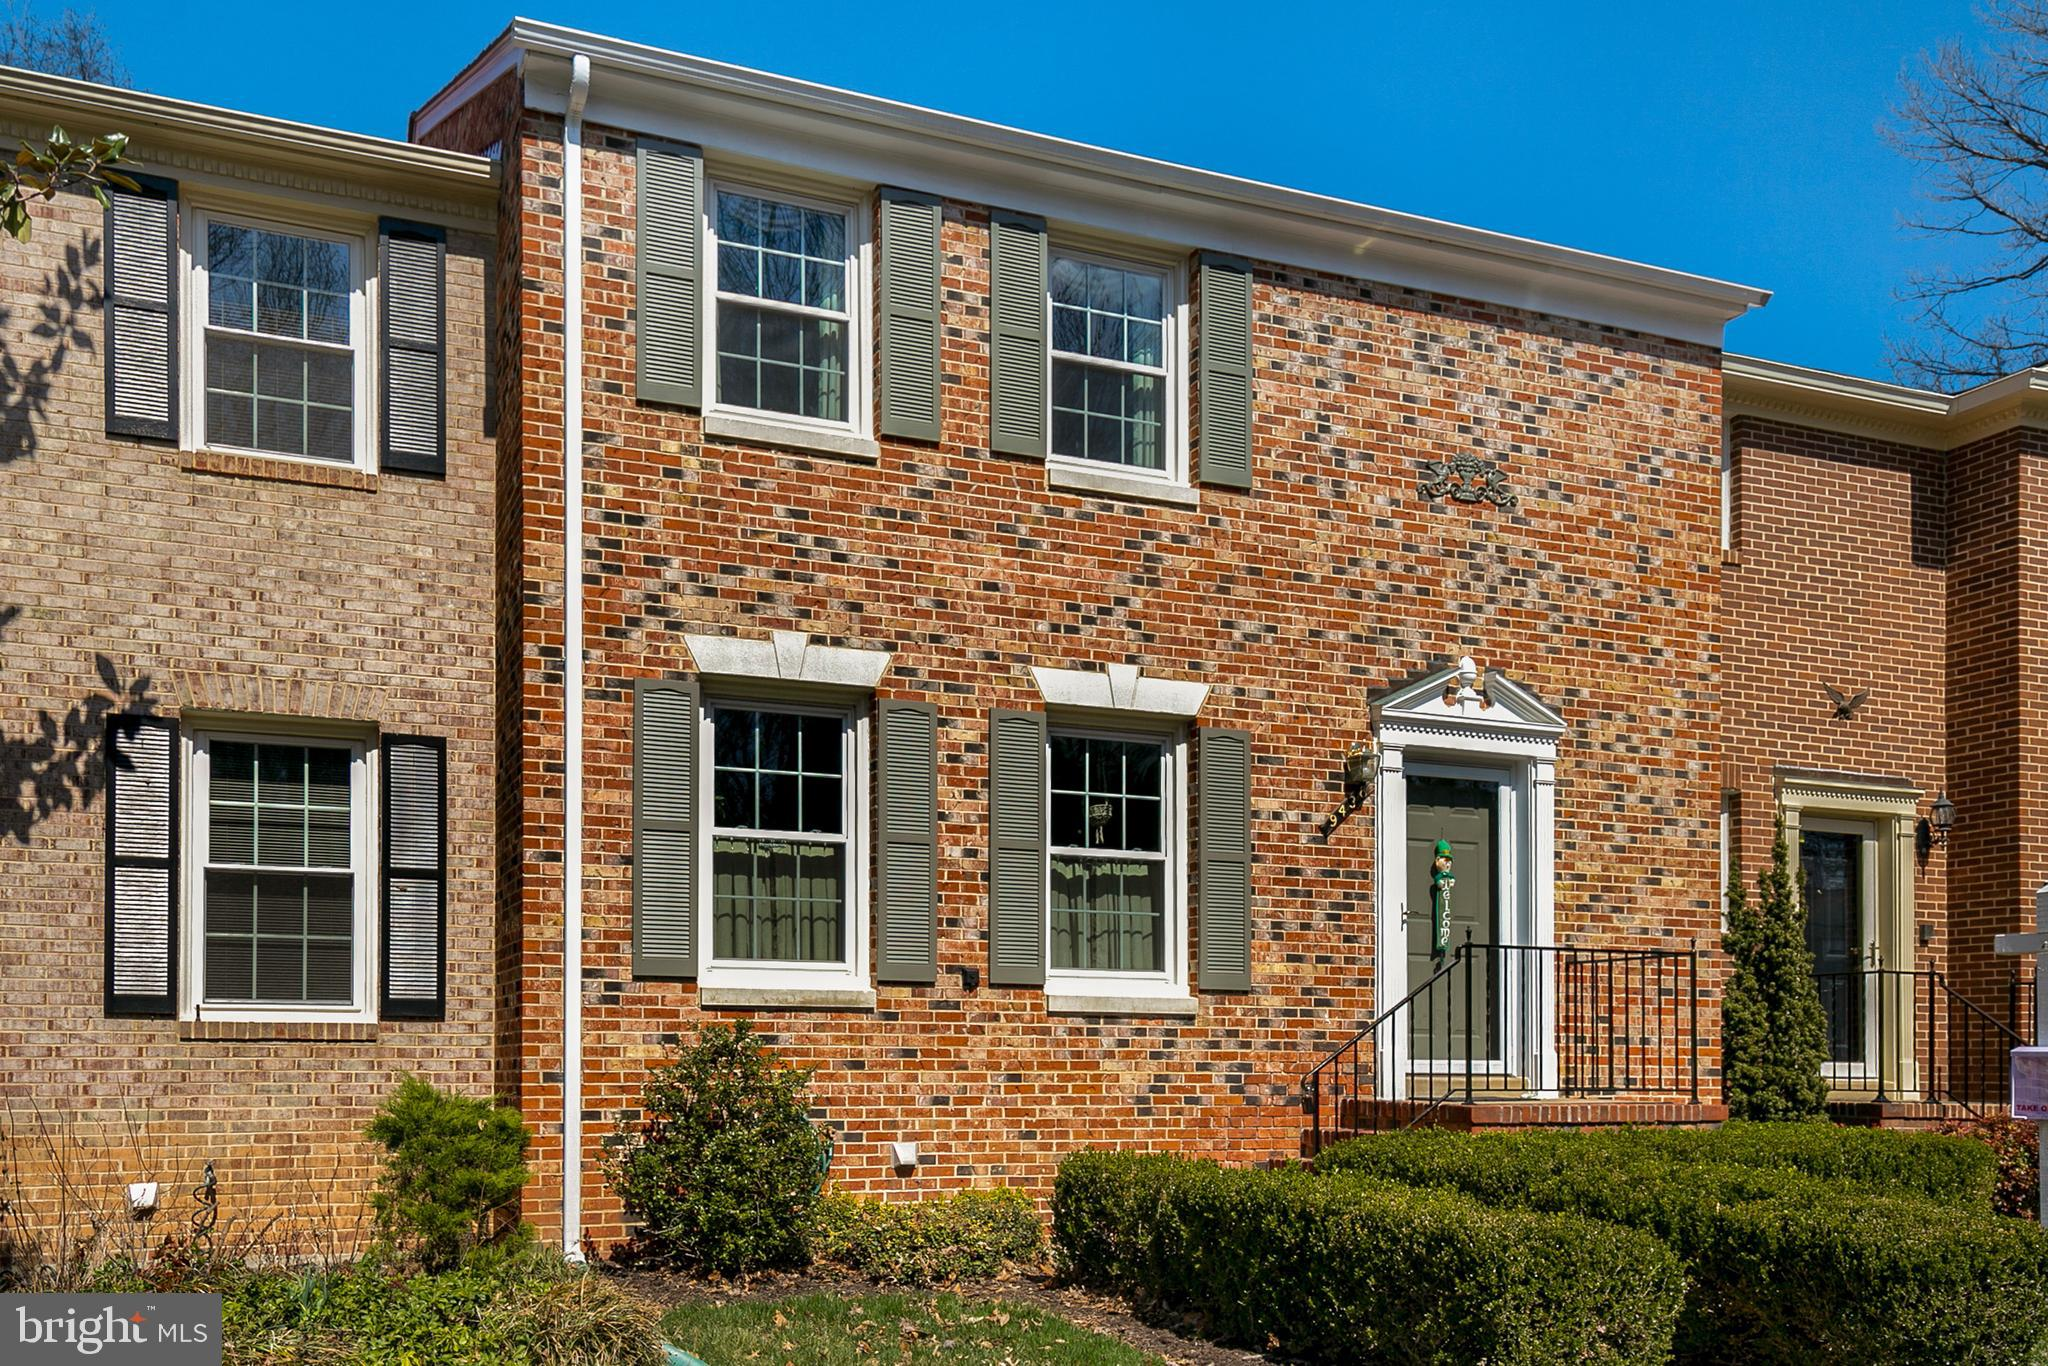 """Fantastic opportunity to own this spacious all-brick Orange Hunt Square townhome! The """"Charleston"""" is one of the most popular models in the community due to its flexible & spacious floorplan with over 2,200 square feet of livable space including finished lower level. Large, eat-in Kitchen updated with newer appliances & granite countertops, Comfortable Dining & Living Rooms and convenient Powder Room complete the main level. Three spacious Bedrooms along with two full Bathrooms on the upper level. Master suite includes dressing area, walk-in closet & Master bathroom with shower. Lower level features large Rec Room with wood fireplace, updated wet bar with built-in cabinetry & granite counters plus walk-out to open & sunny fully-fenced rear yard! Other updates include: roof 2016; HVAC 2014; water heater 2017; replacement windows.  Window treatments & some furniture available for purchase! Ideally located directly across the street from popular South Run Rec Center featuring indoor competition pool, various sport courts, fully-equipped exercise facilities, fitness classes, multiple outdoor sports fields and a dog park! Fantastic commute location right on Fairfax Co Parkway with quick access to Rt123, I-66 & I-395! Quick trip to Pentagon via express Metro bus or Ft Belvoir just minutes away! Top-rated West Springfield HS pyramid!"""